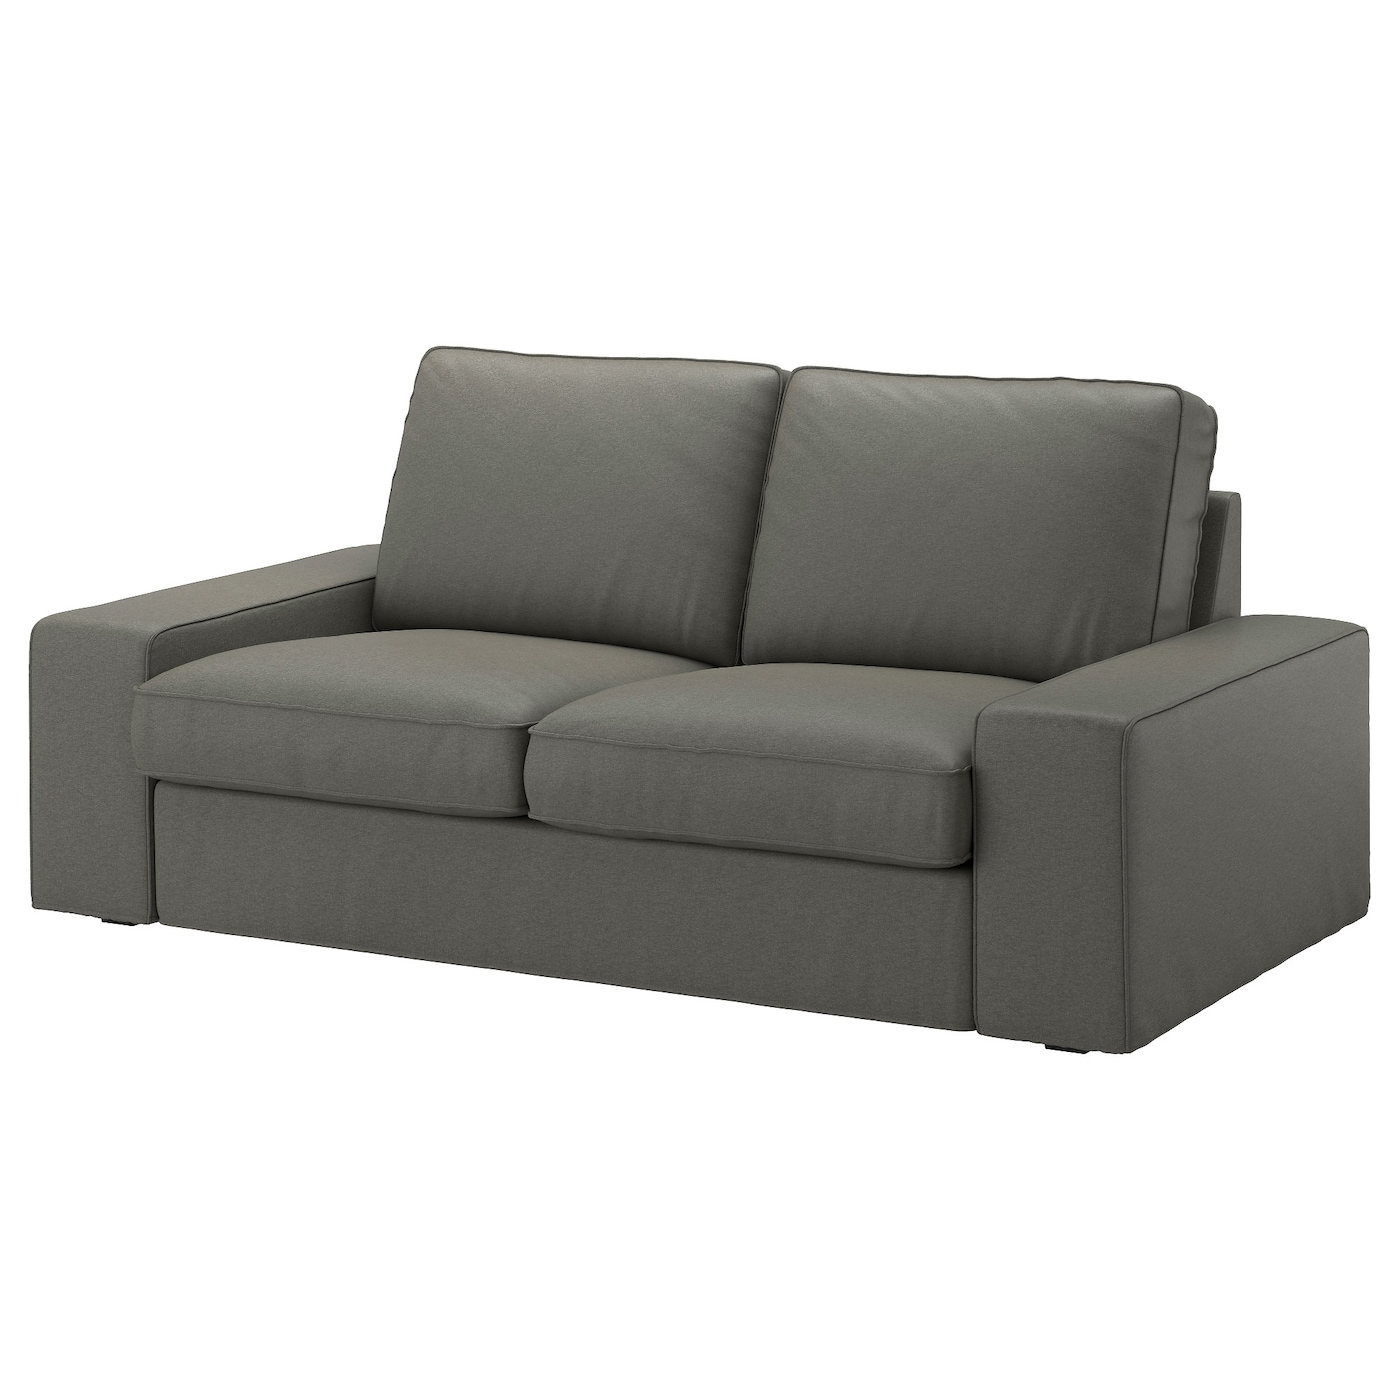 Charmant IKEA KIVIK Two Seat Sofa 10 Year Guarantee. Read About The Terms In The